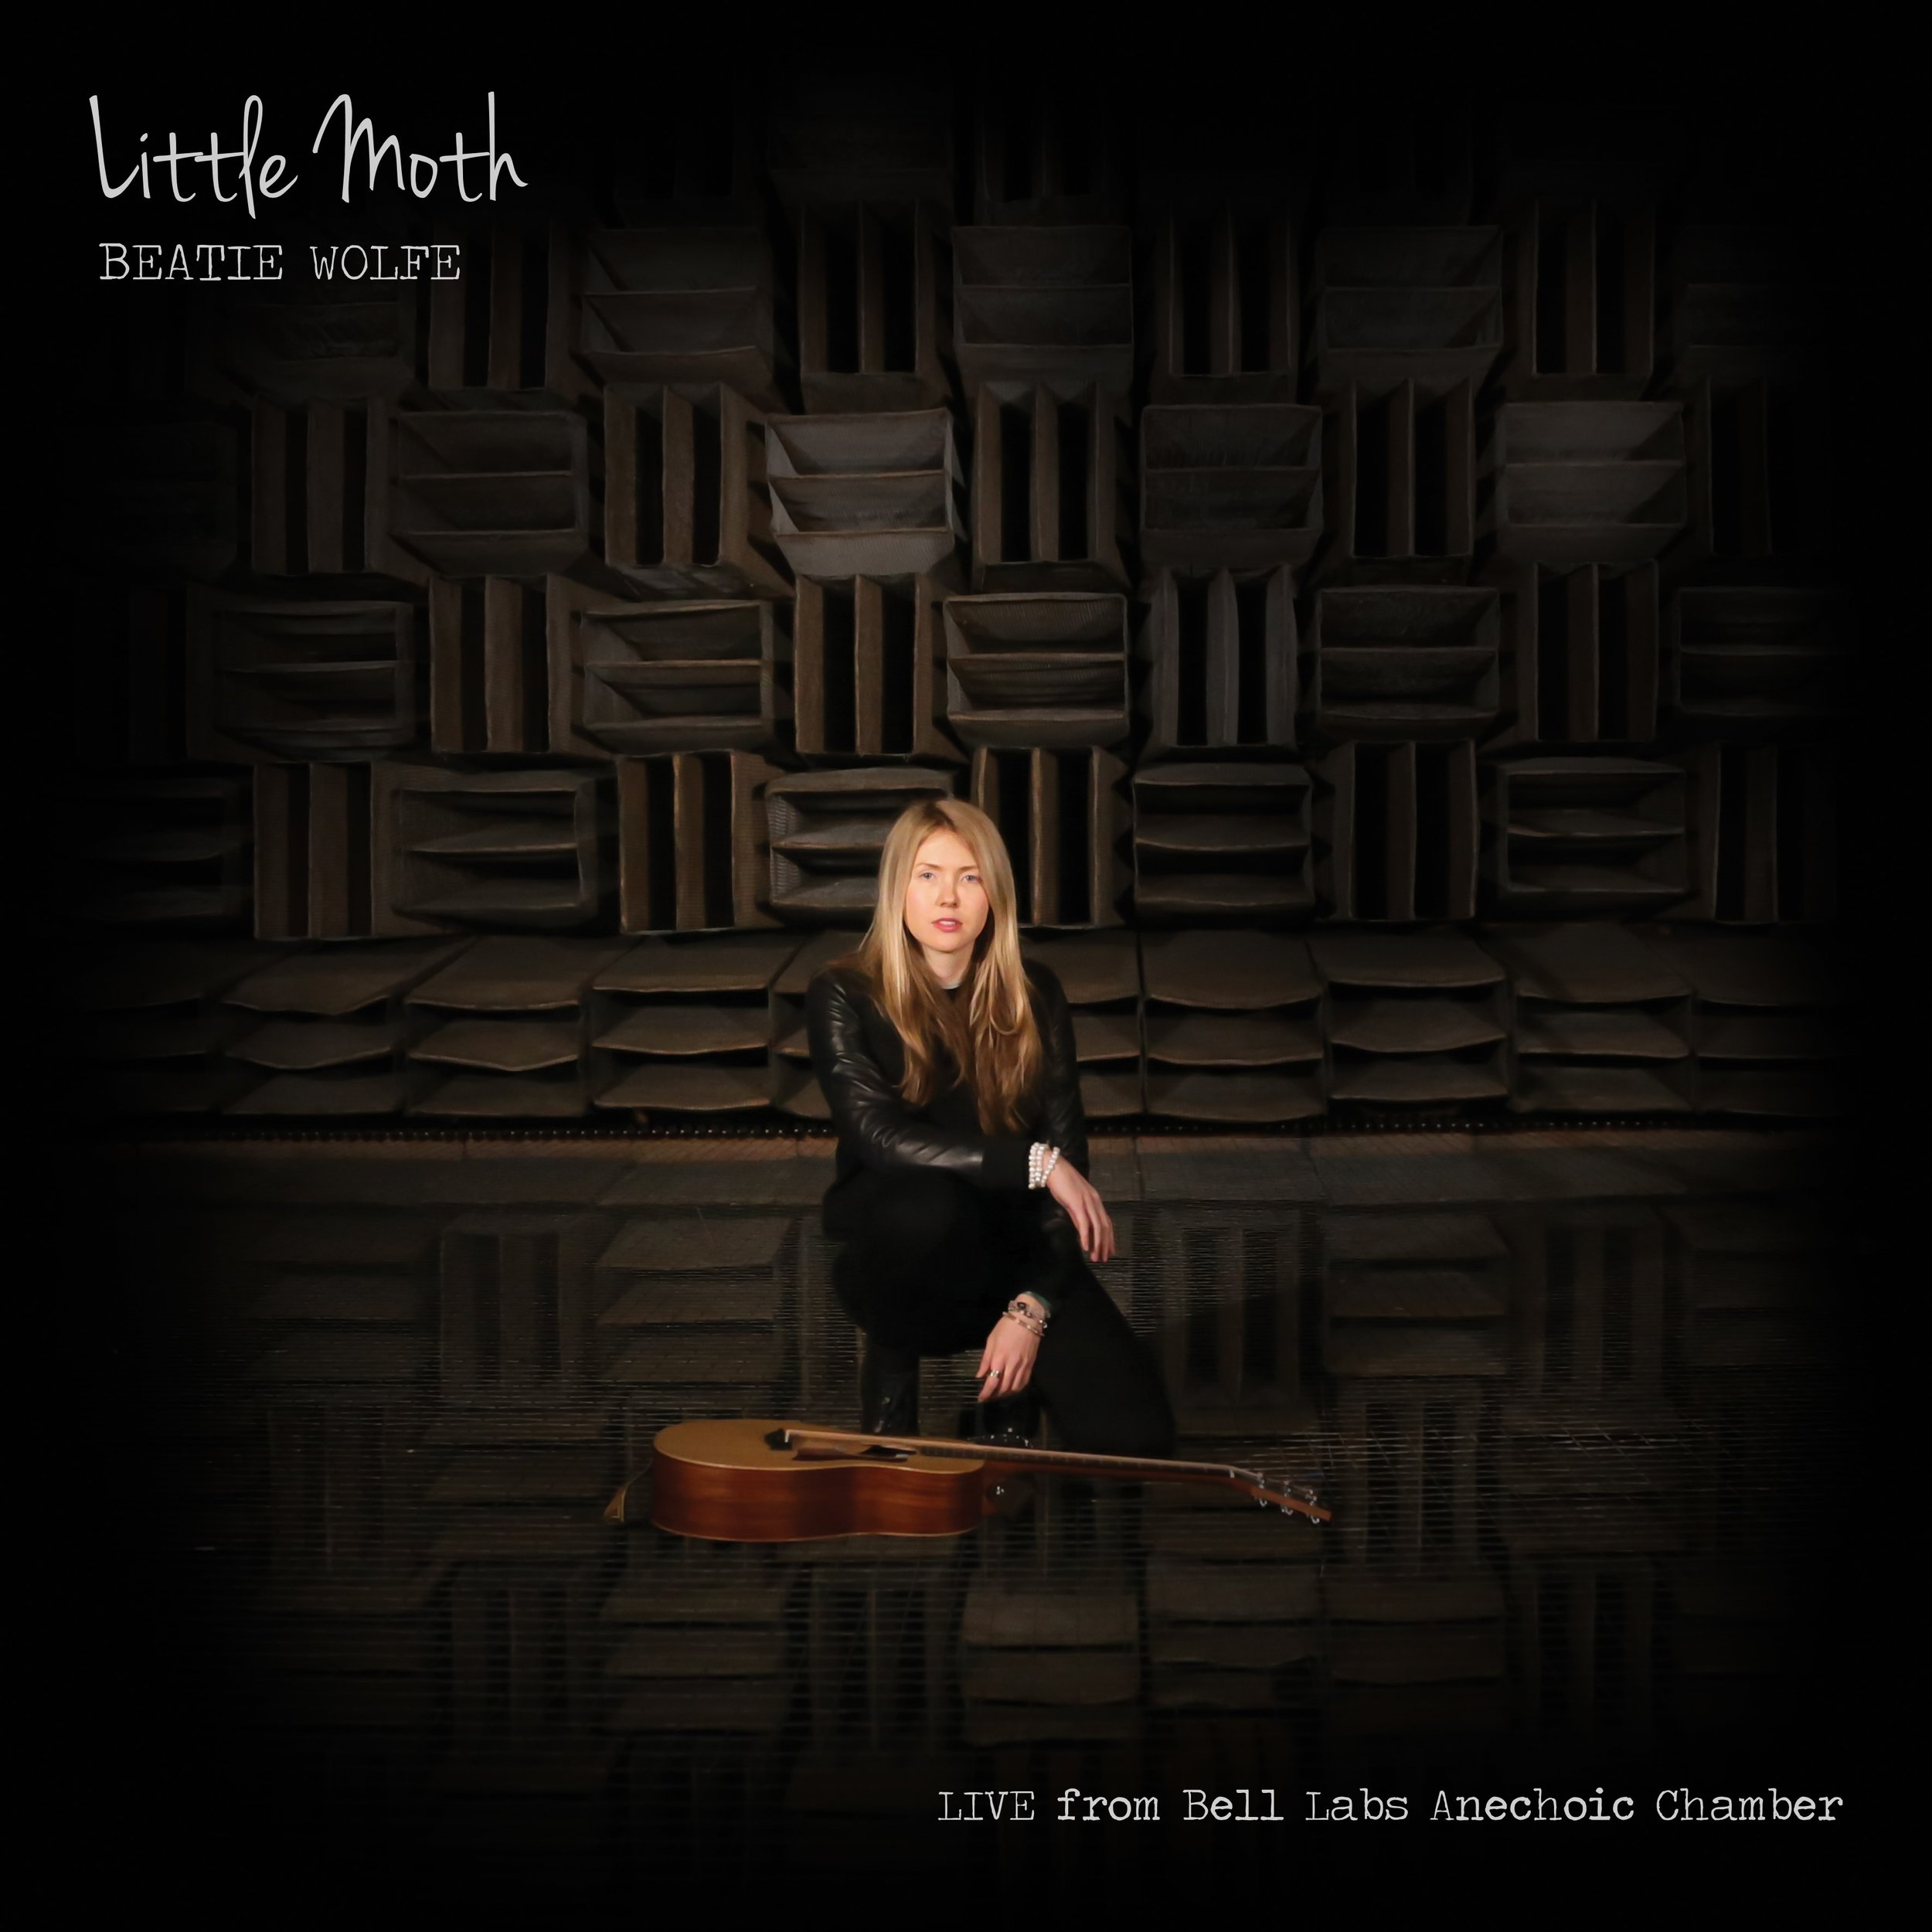 Little Moth - Live from the Nokia Bell Labs Anechoic Chamber